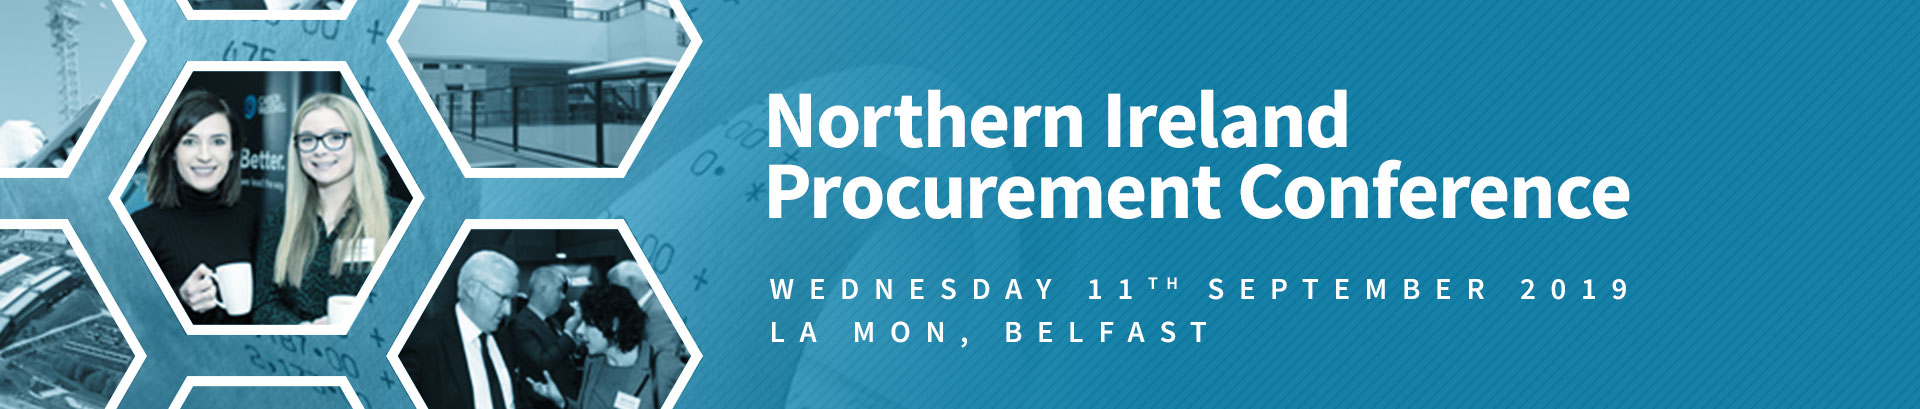 NI Procurement_large_widget